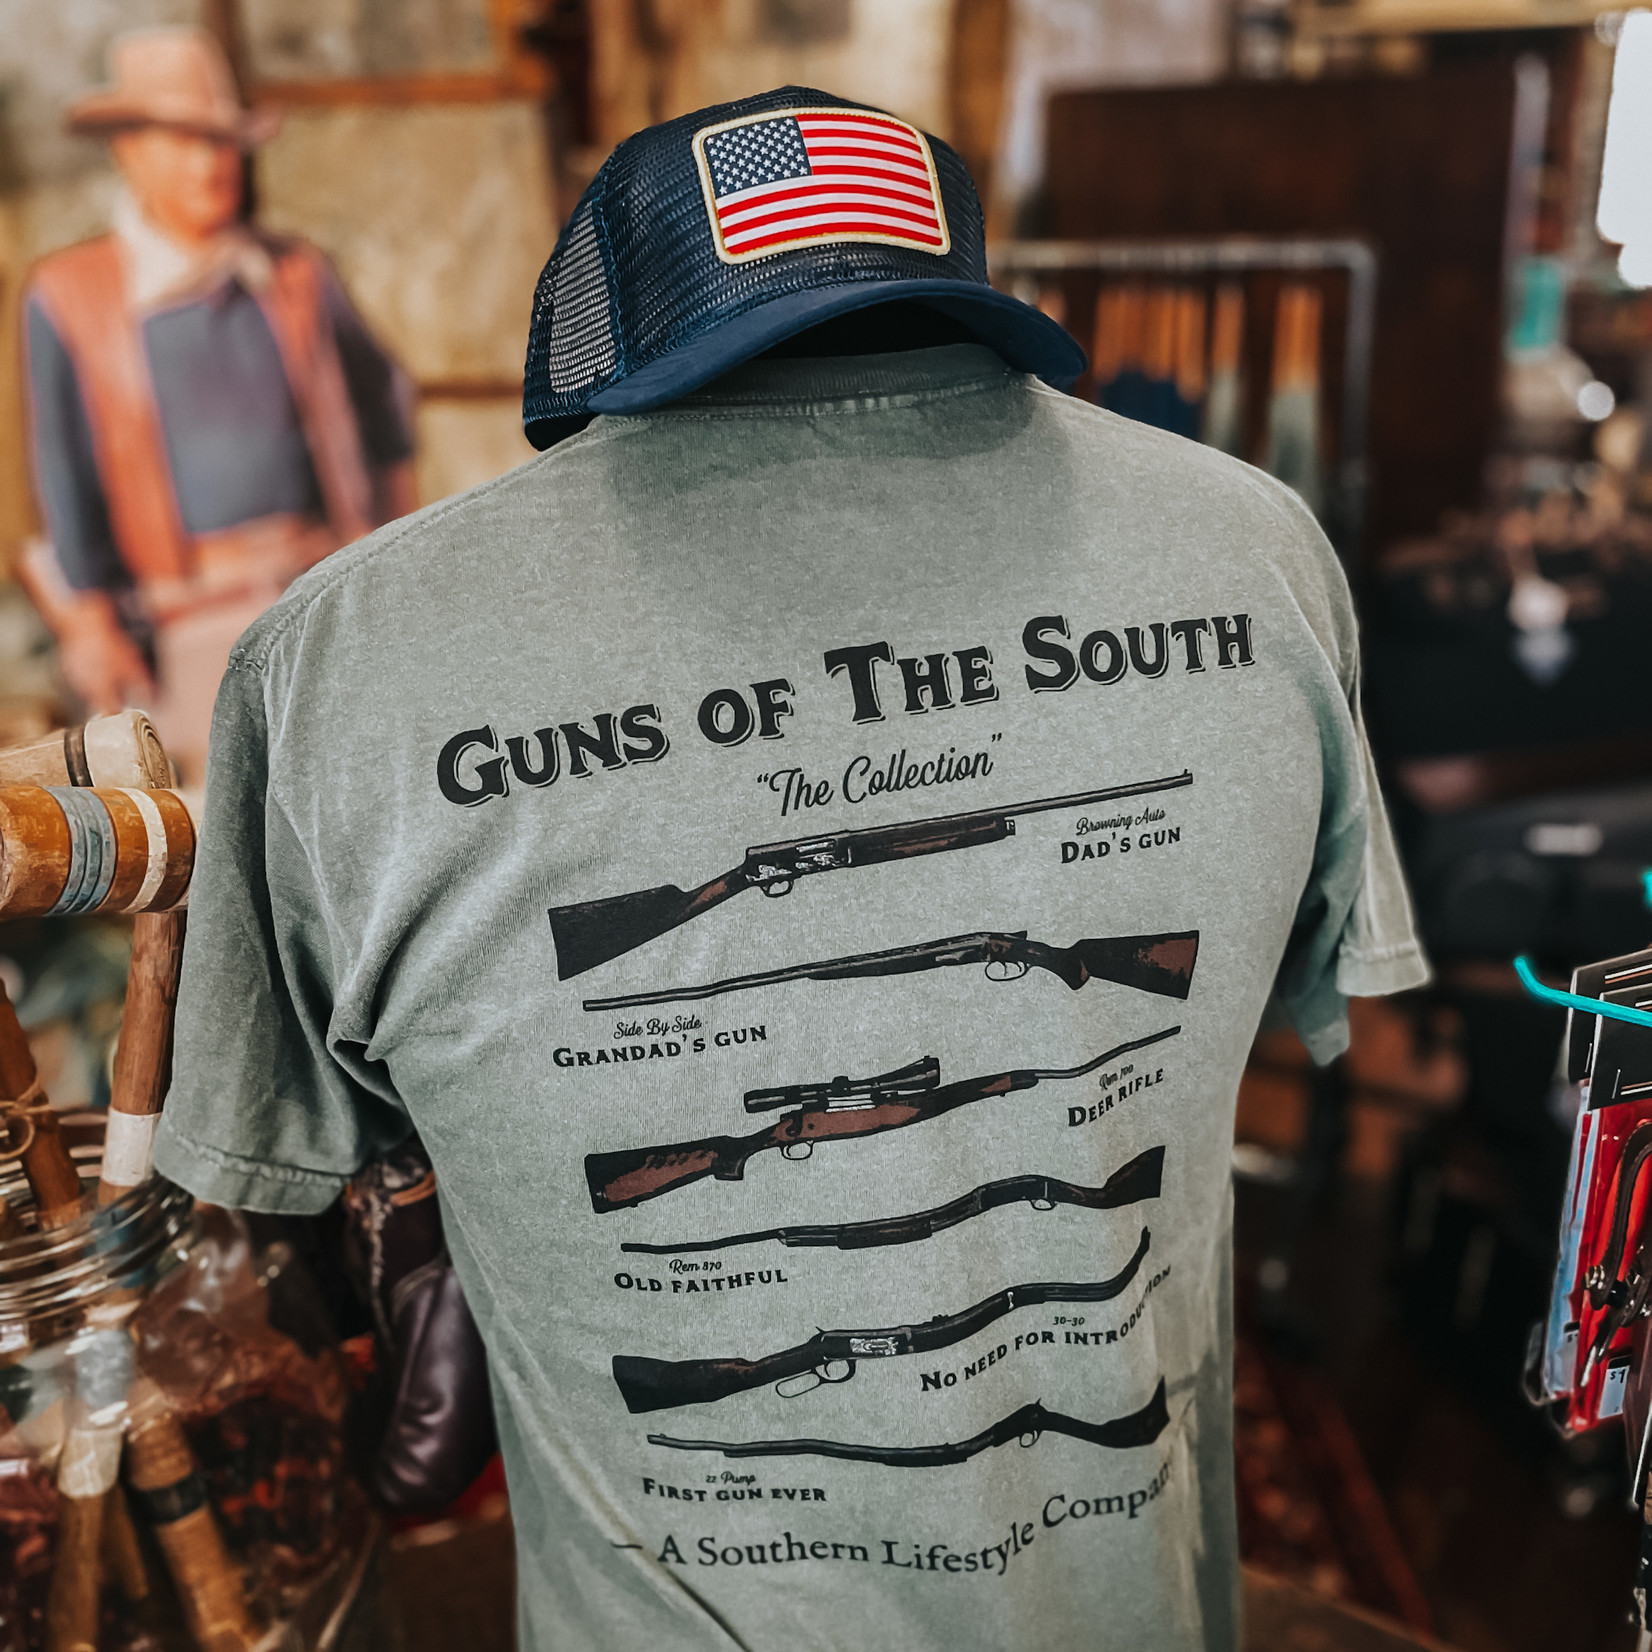 A Southern Lifestyle Guns of the South T-shirt